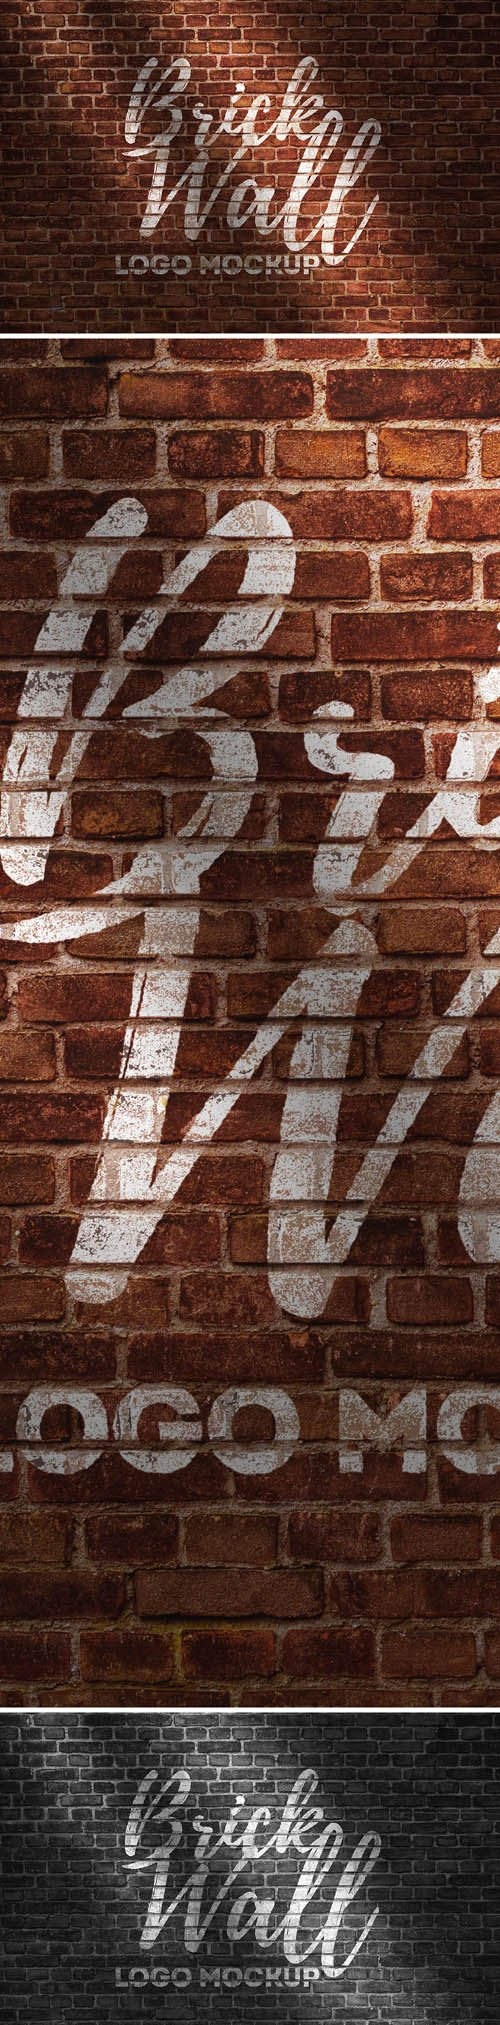 PSD Mock-Up - Brick Wall Logo